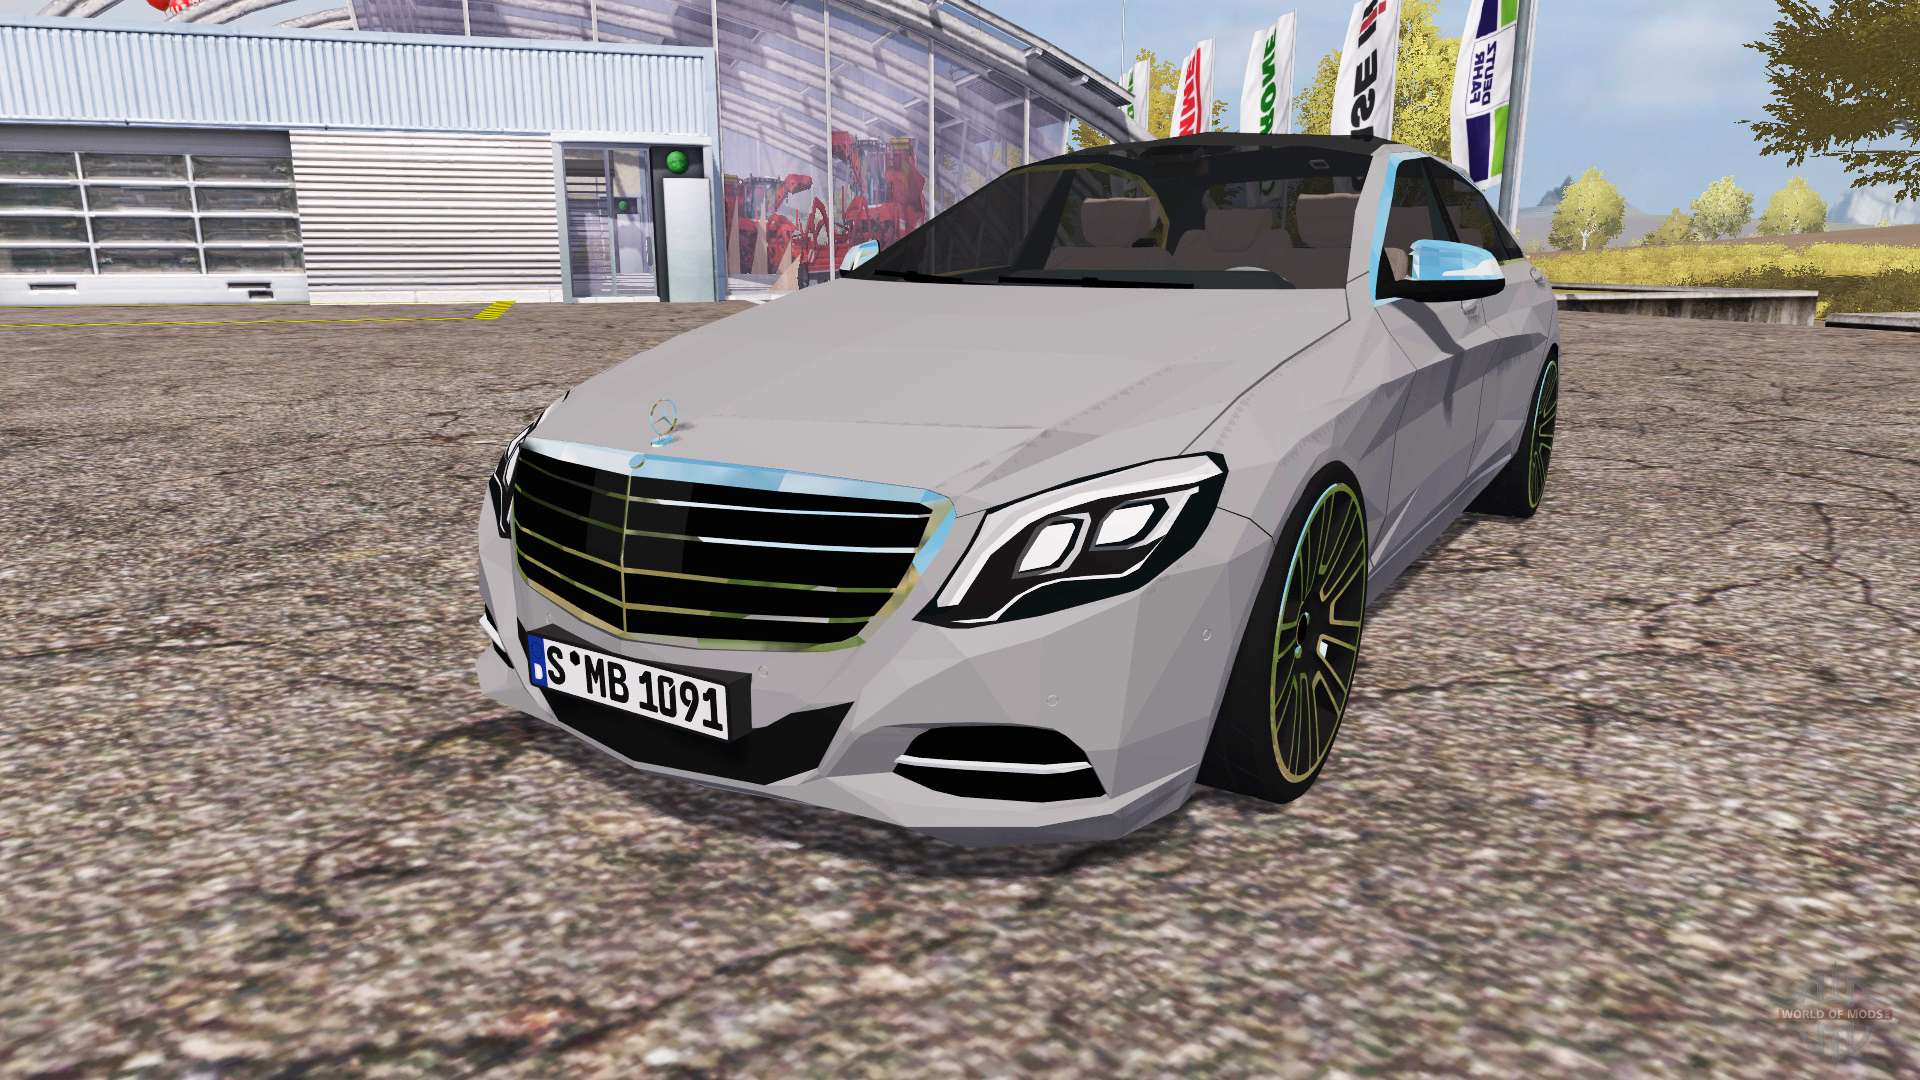 Mercedes benz s 350 v222 2014 for farming simulator 2013 for Mercedes benz s 350